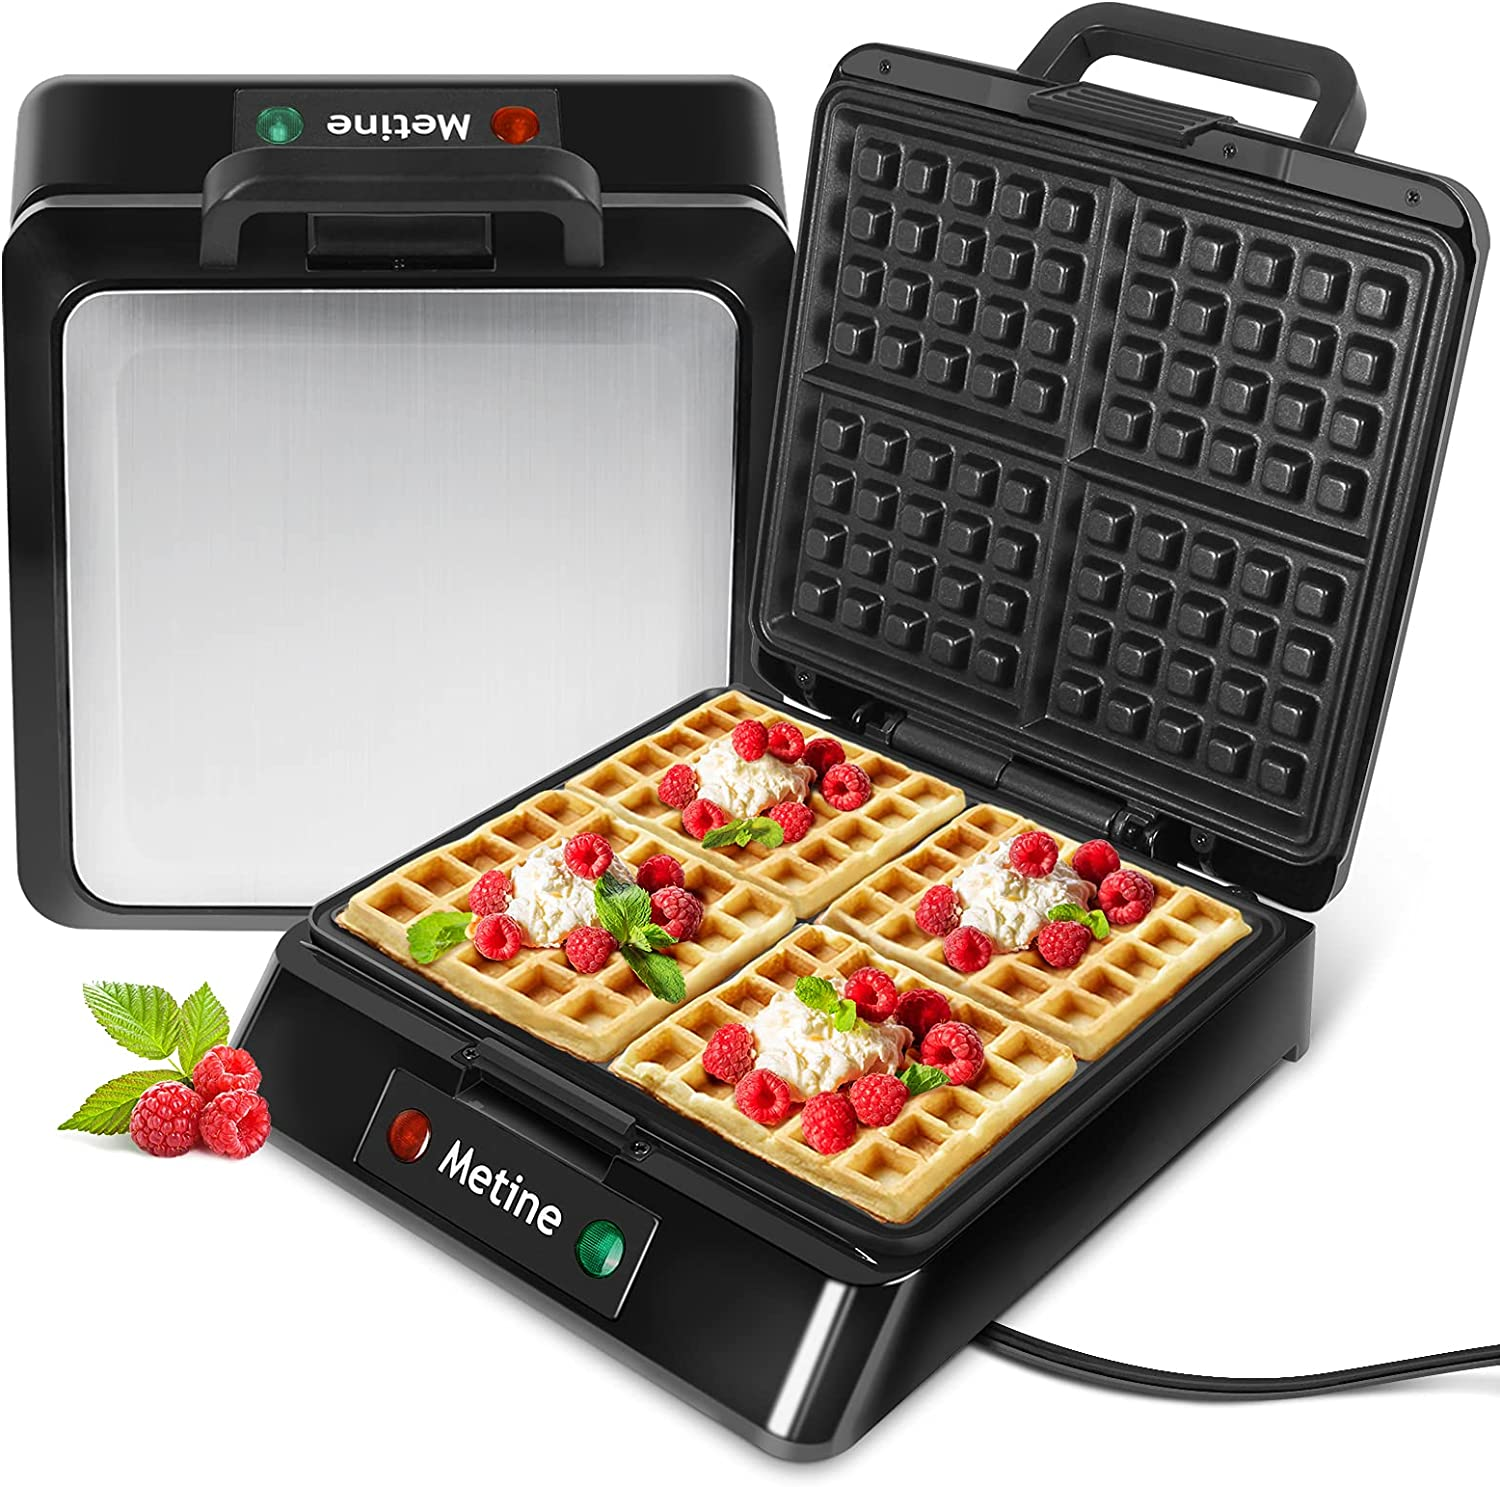 Metine Waffle Maker Regular discount Irons Sales w Waffles Slice Square 4 Large